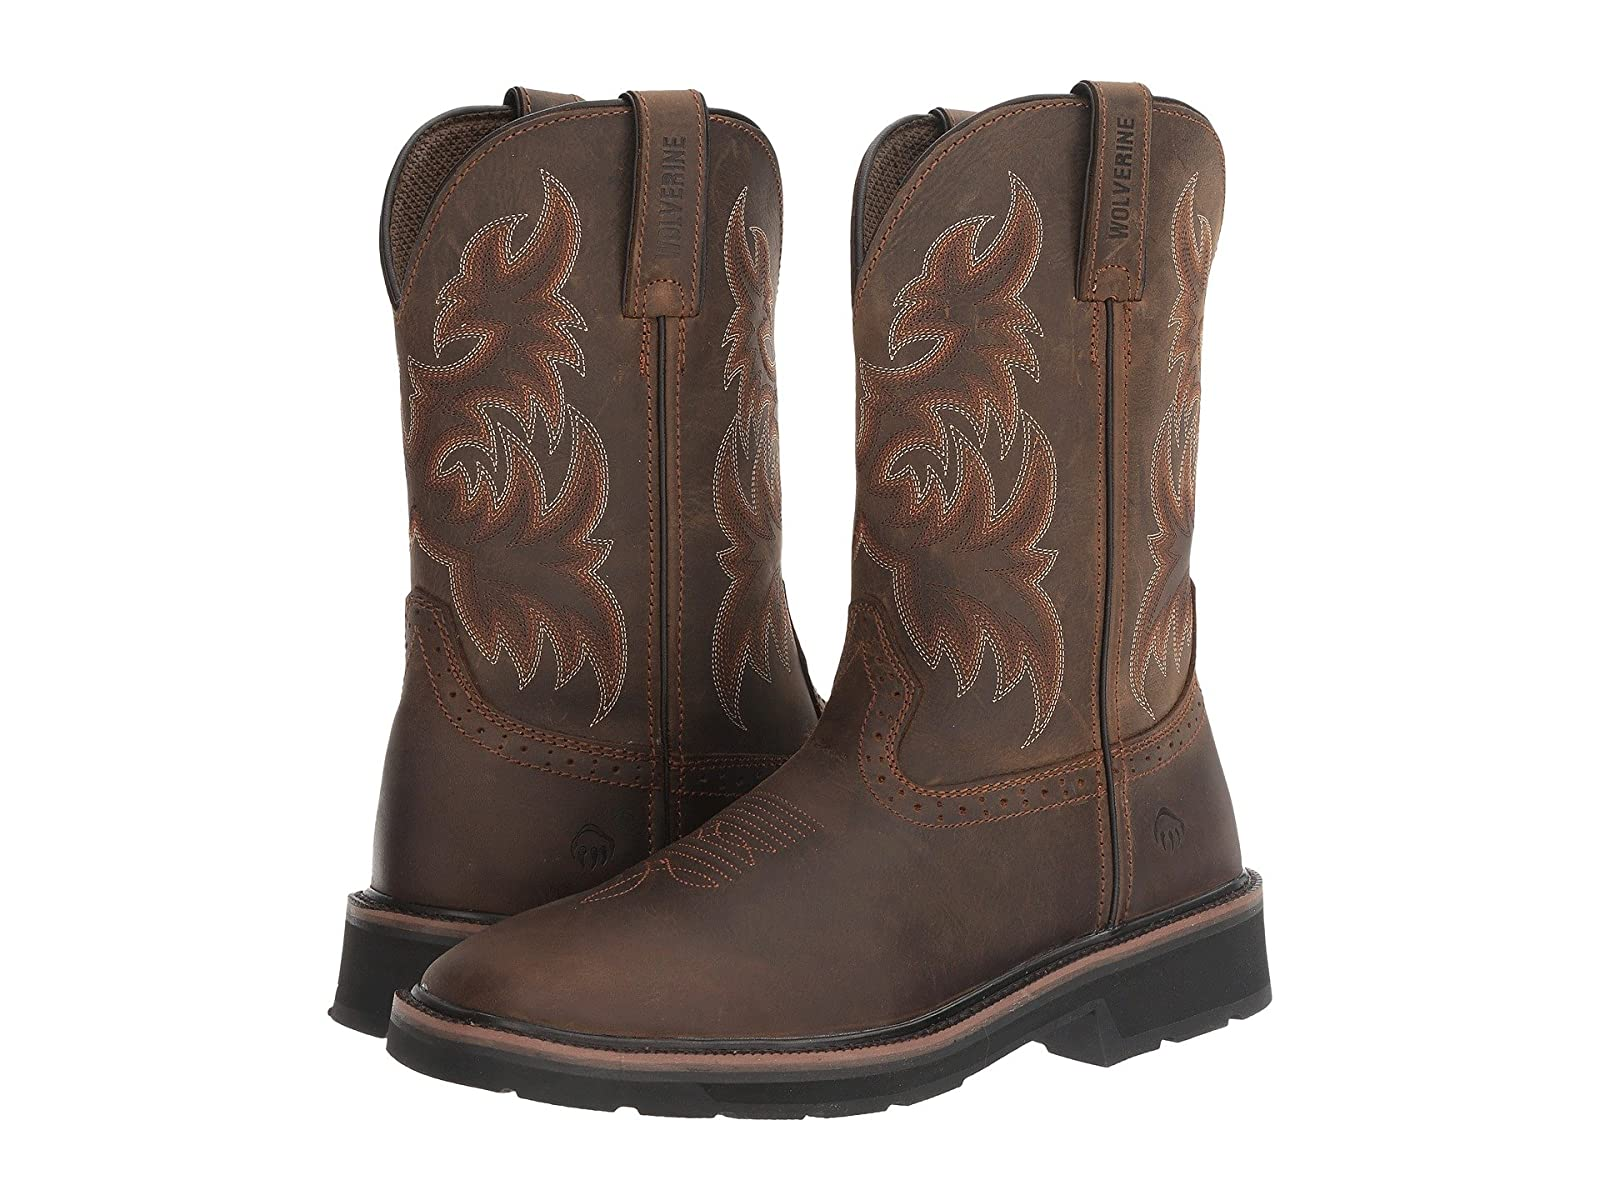 Wolverine Rancher Wellington Soft ToeEconomical and quality shoes